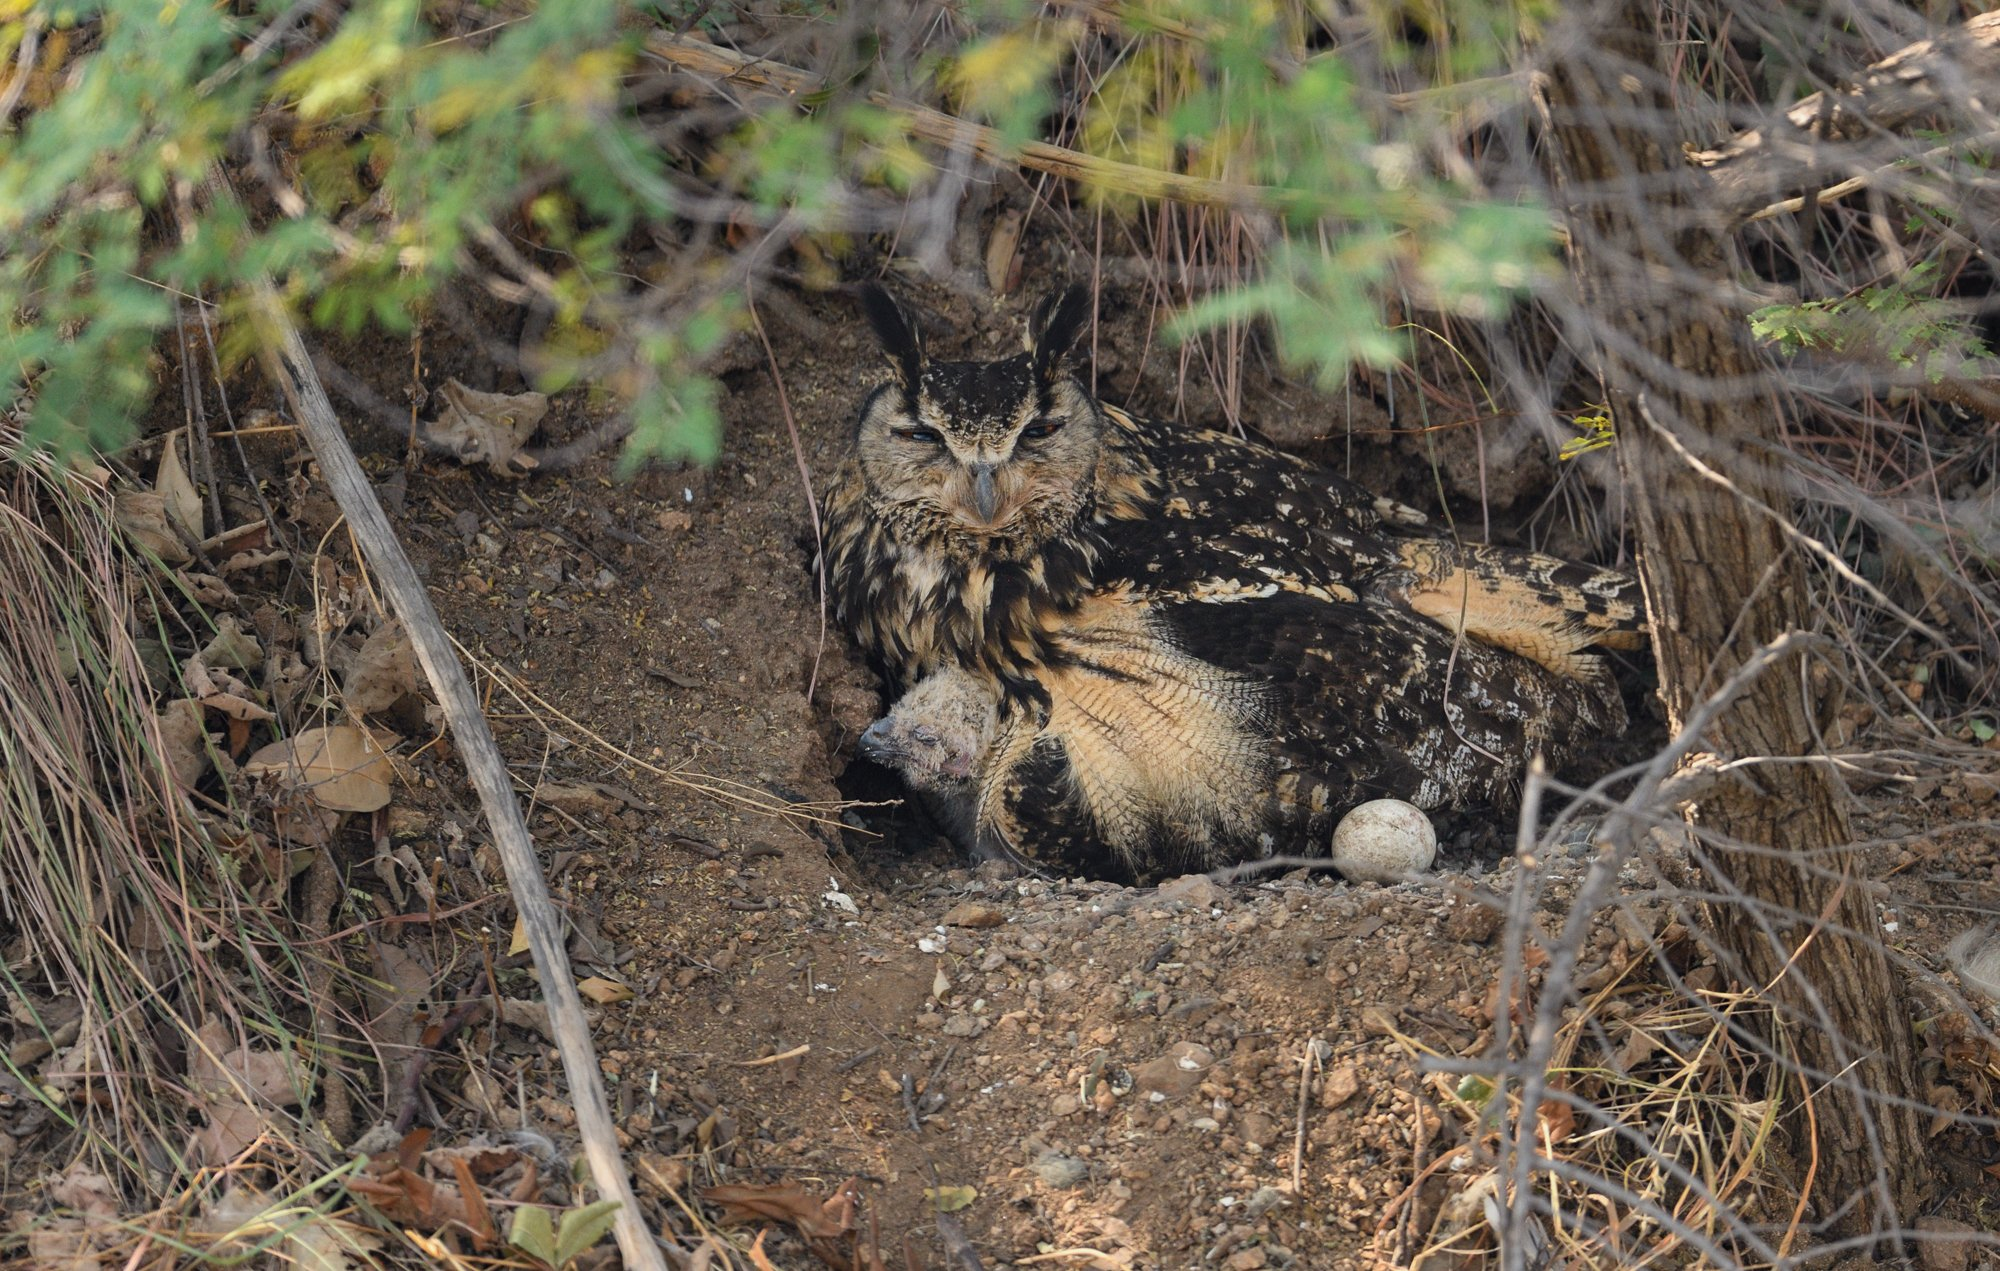 Indian Eagle Owl with chicks